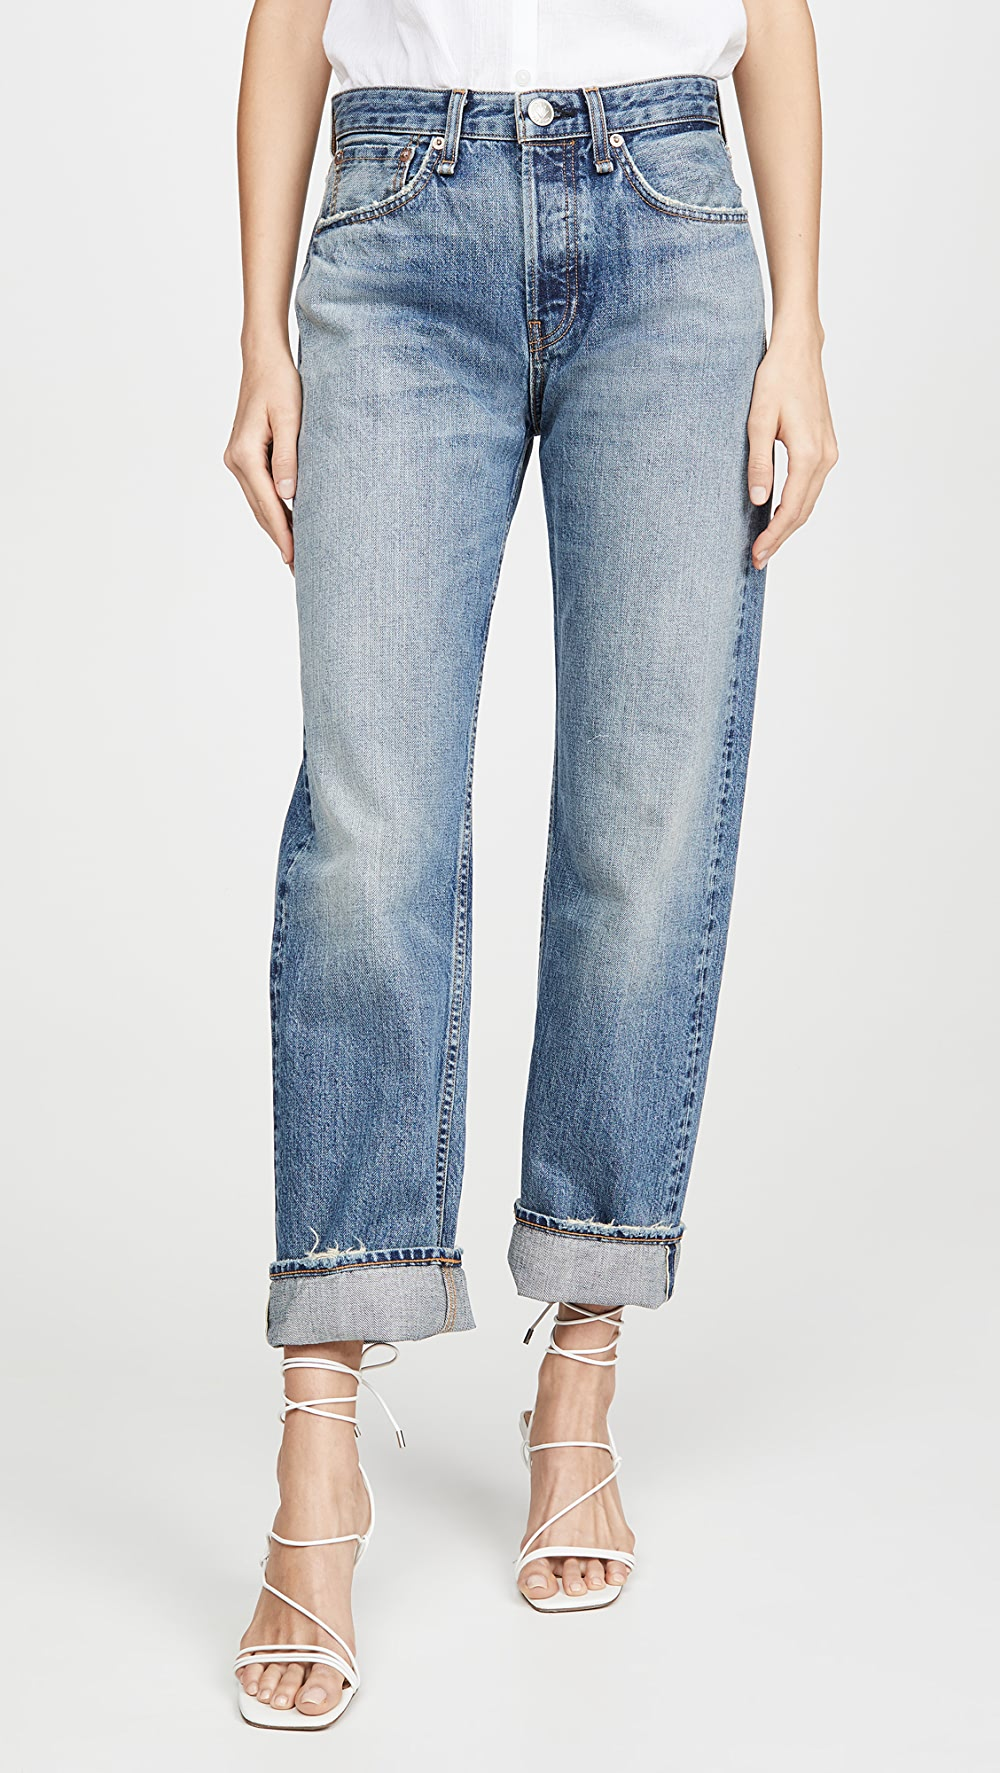 2019 Fashion Rag & Bone/jean - Maya High Rise Ankle Straight Jeans Clear And Distinctive